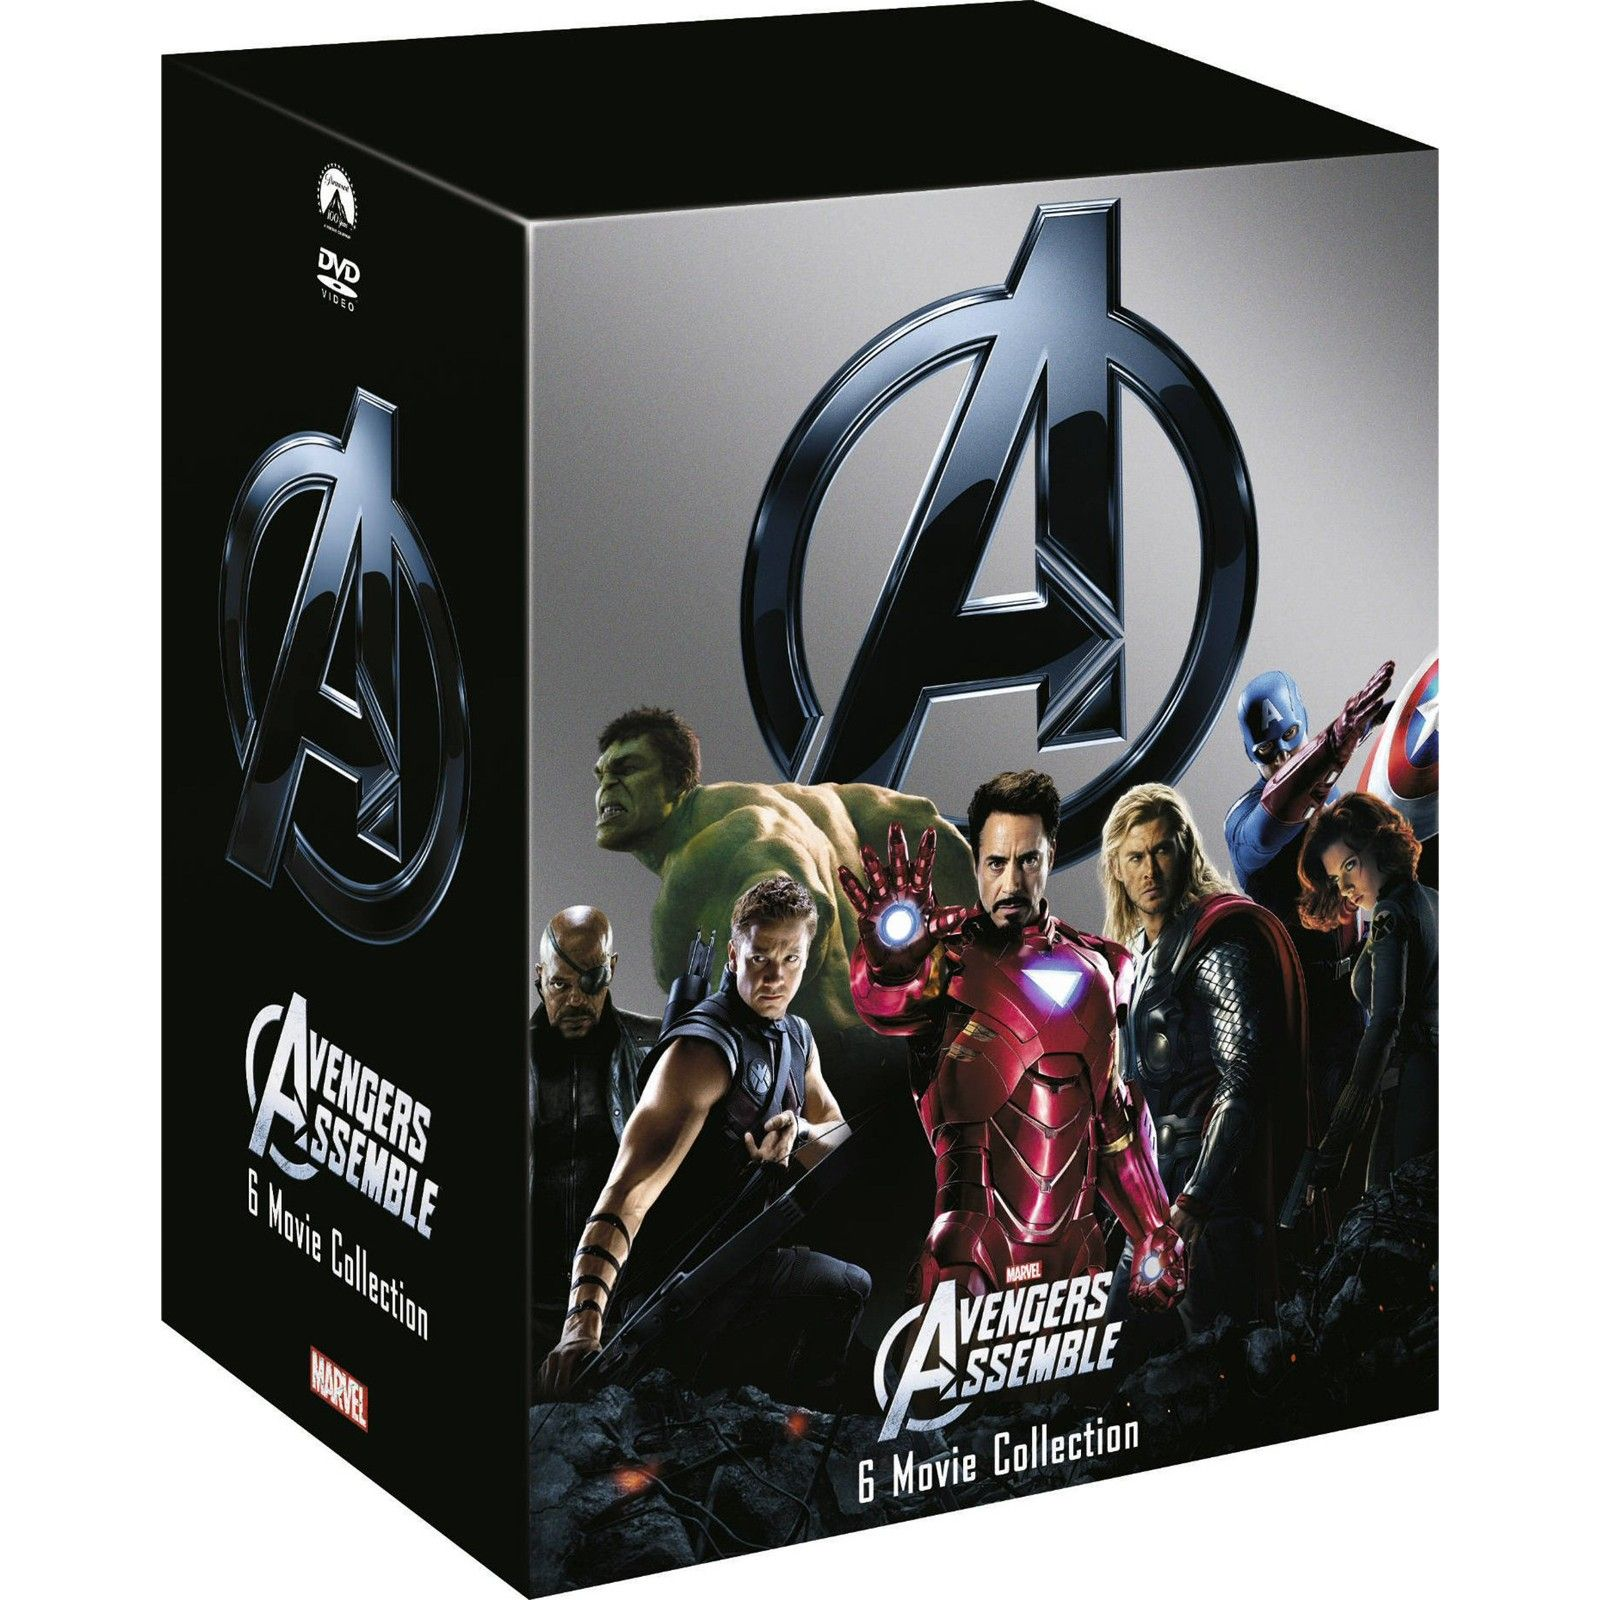 The Marvel S The Avengers International Collector S Set Box Set 6 Discs Six Degrees Of Avengers 29 99 Avengers Marvel Avengers Assemble Boxset